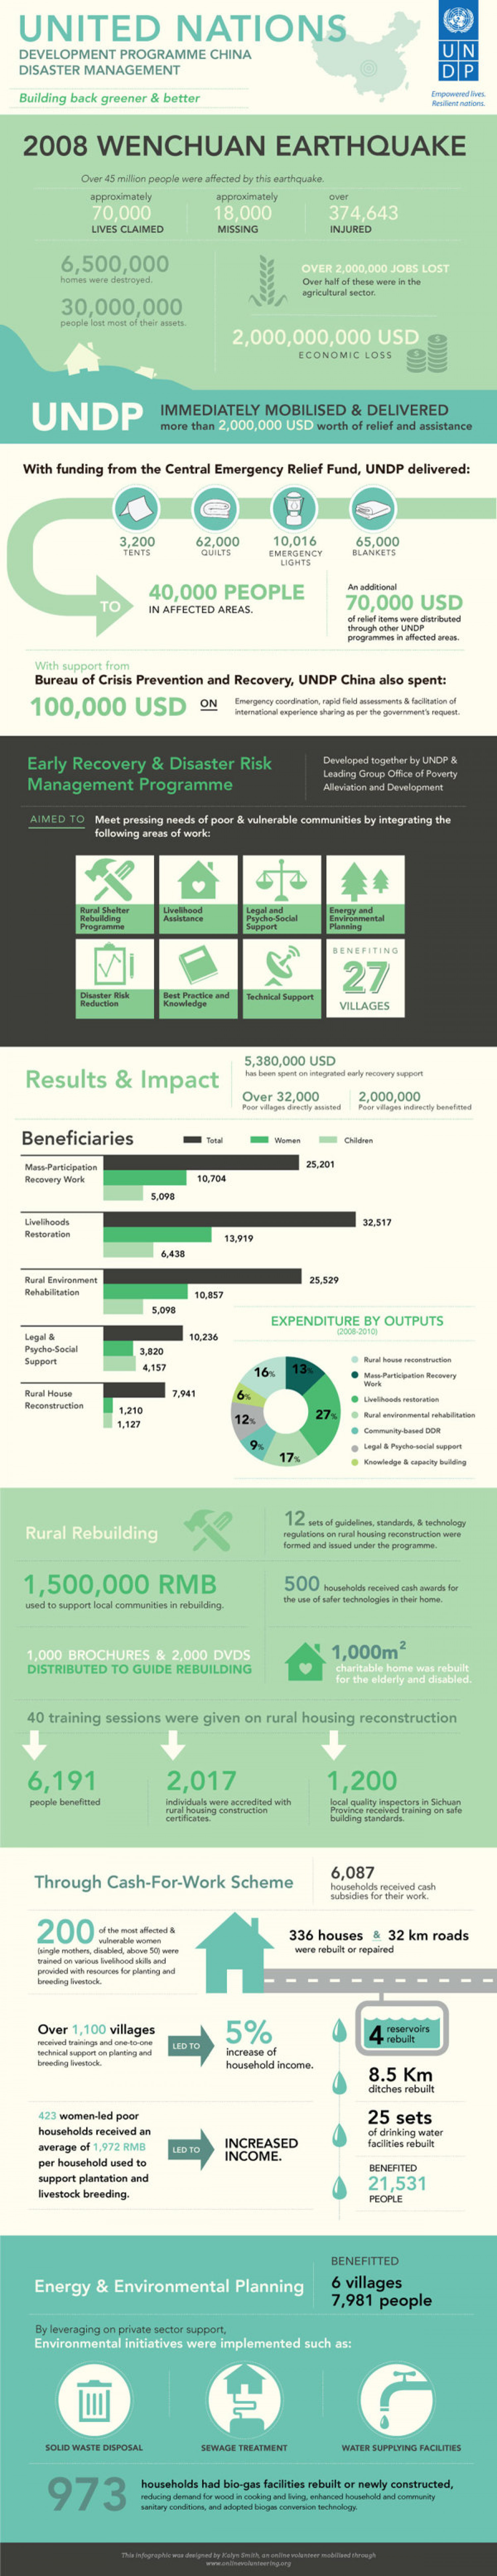 UNDP of China Response to Wenchuan Earthquake Infographic